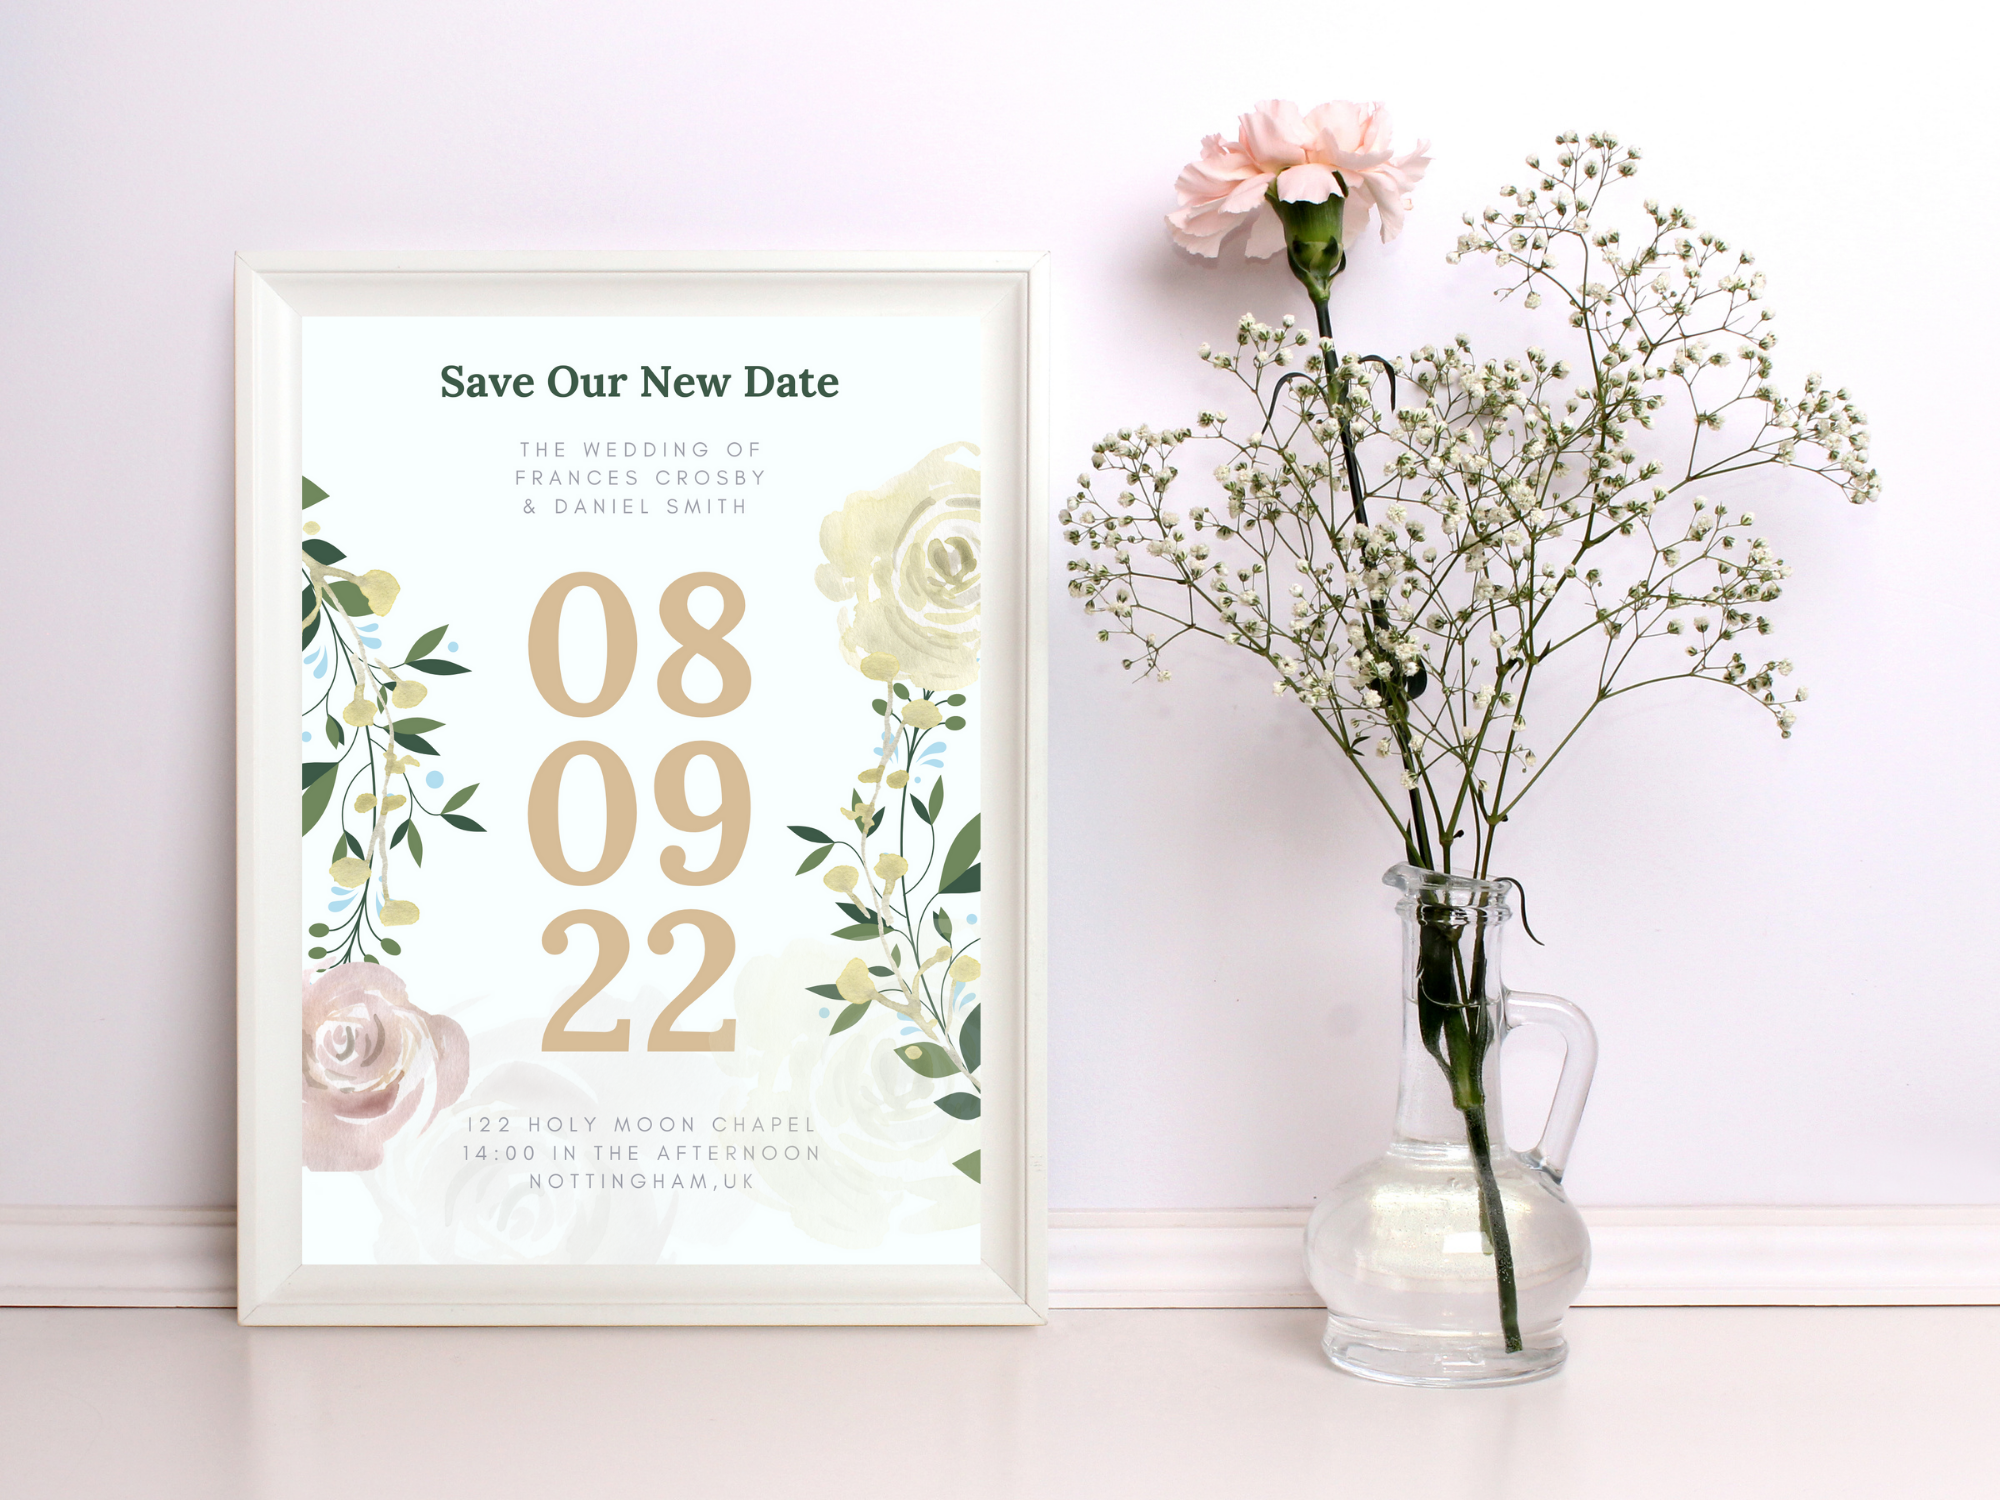 Save The NEW Date floral VWUK Designs